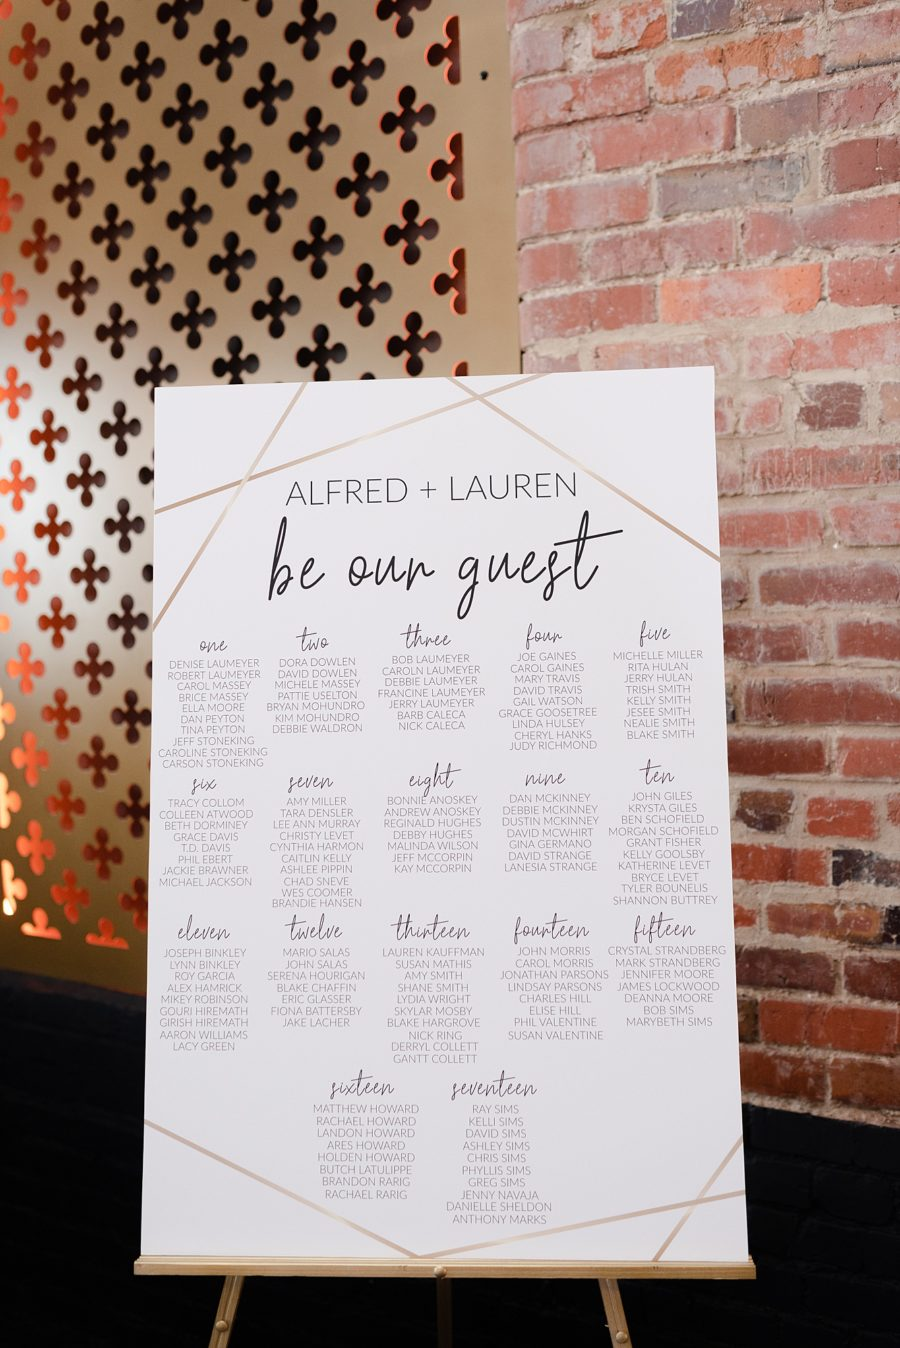 Wedding Seating Chart: Modern and Southern Wedding at the Clementine featured on Nashville Bride Guide